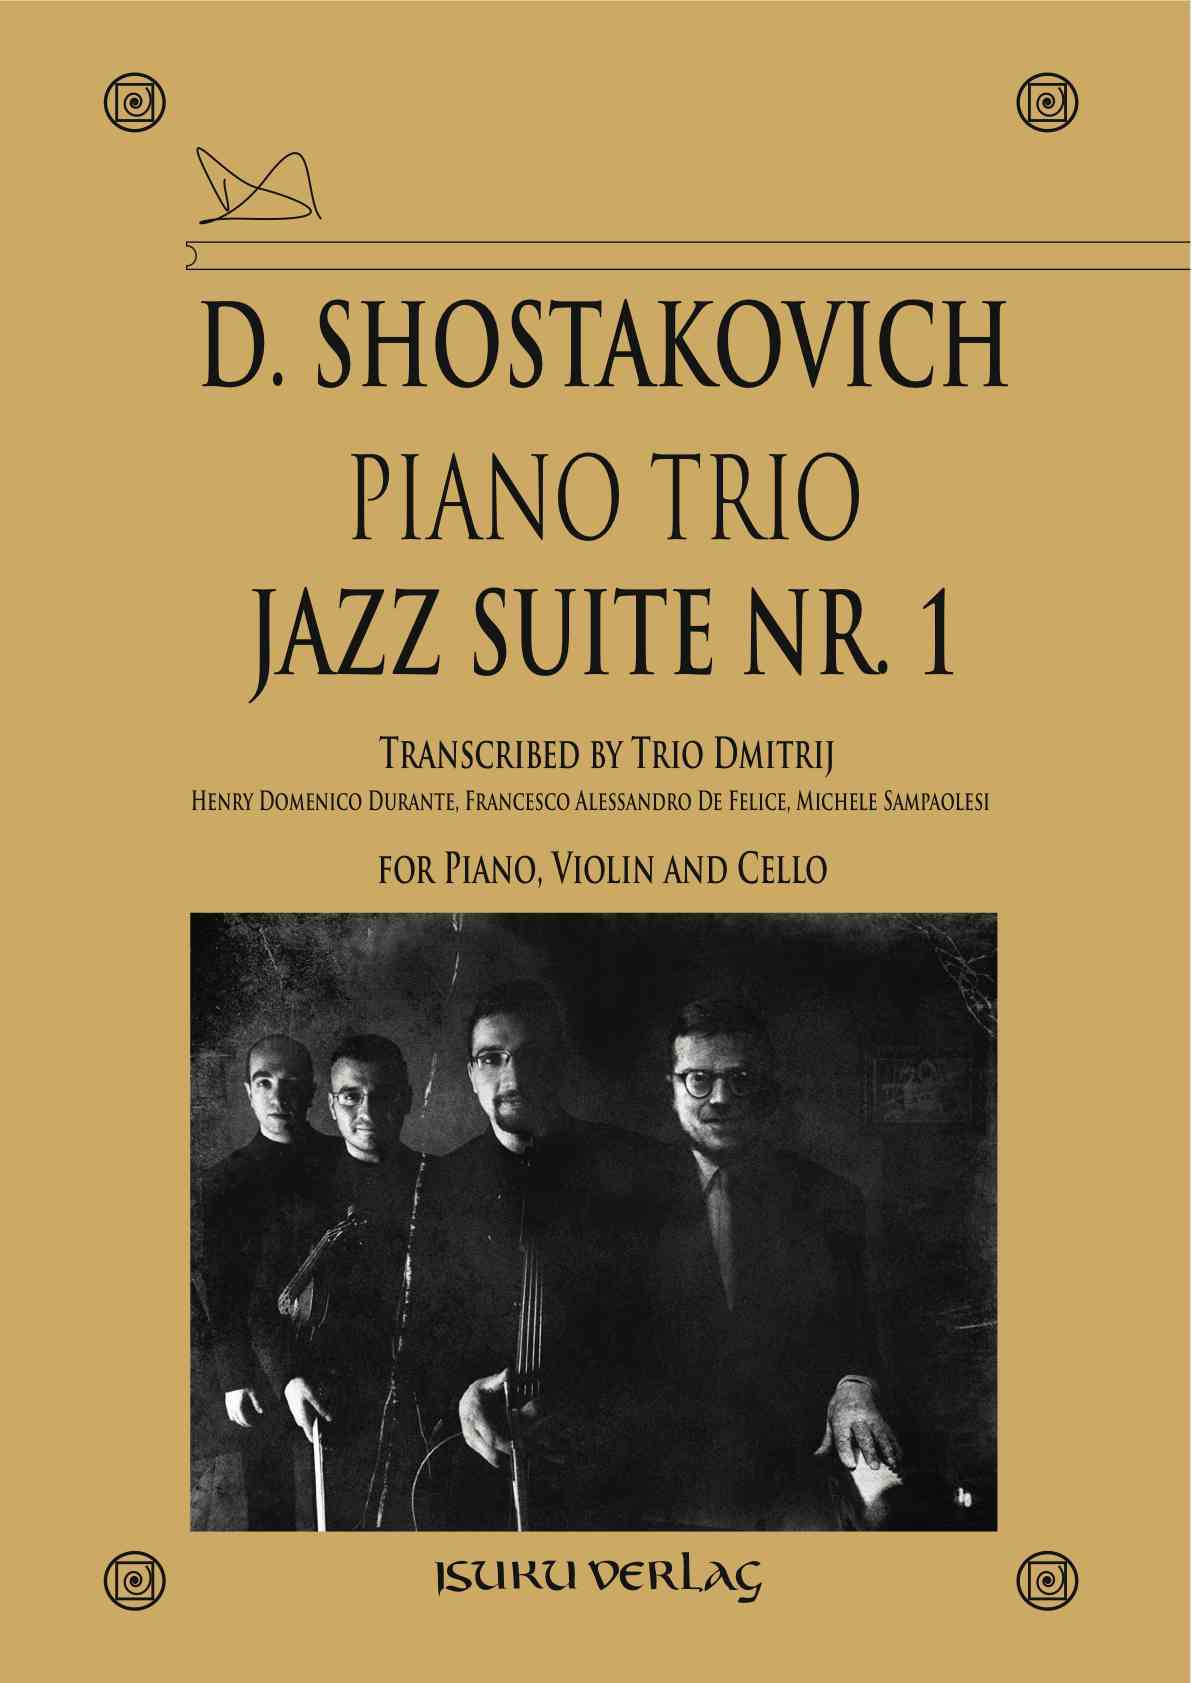 Piano Trio Jazz Suite Nr. 1